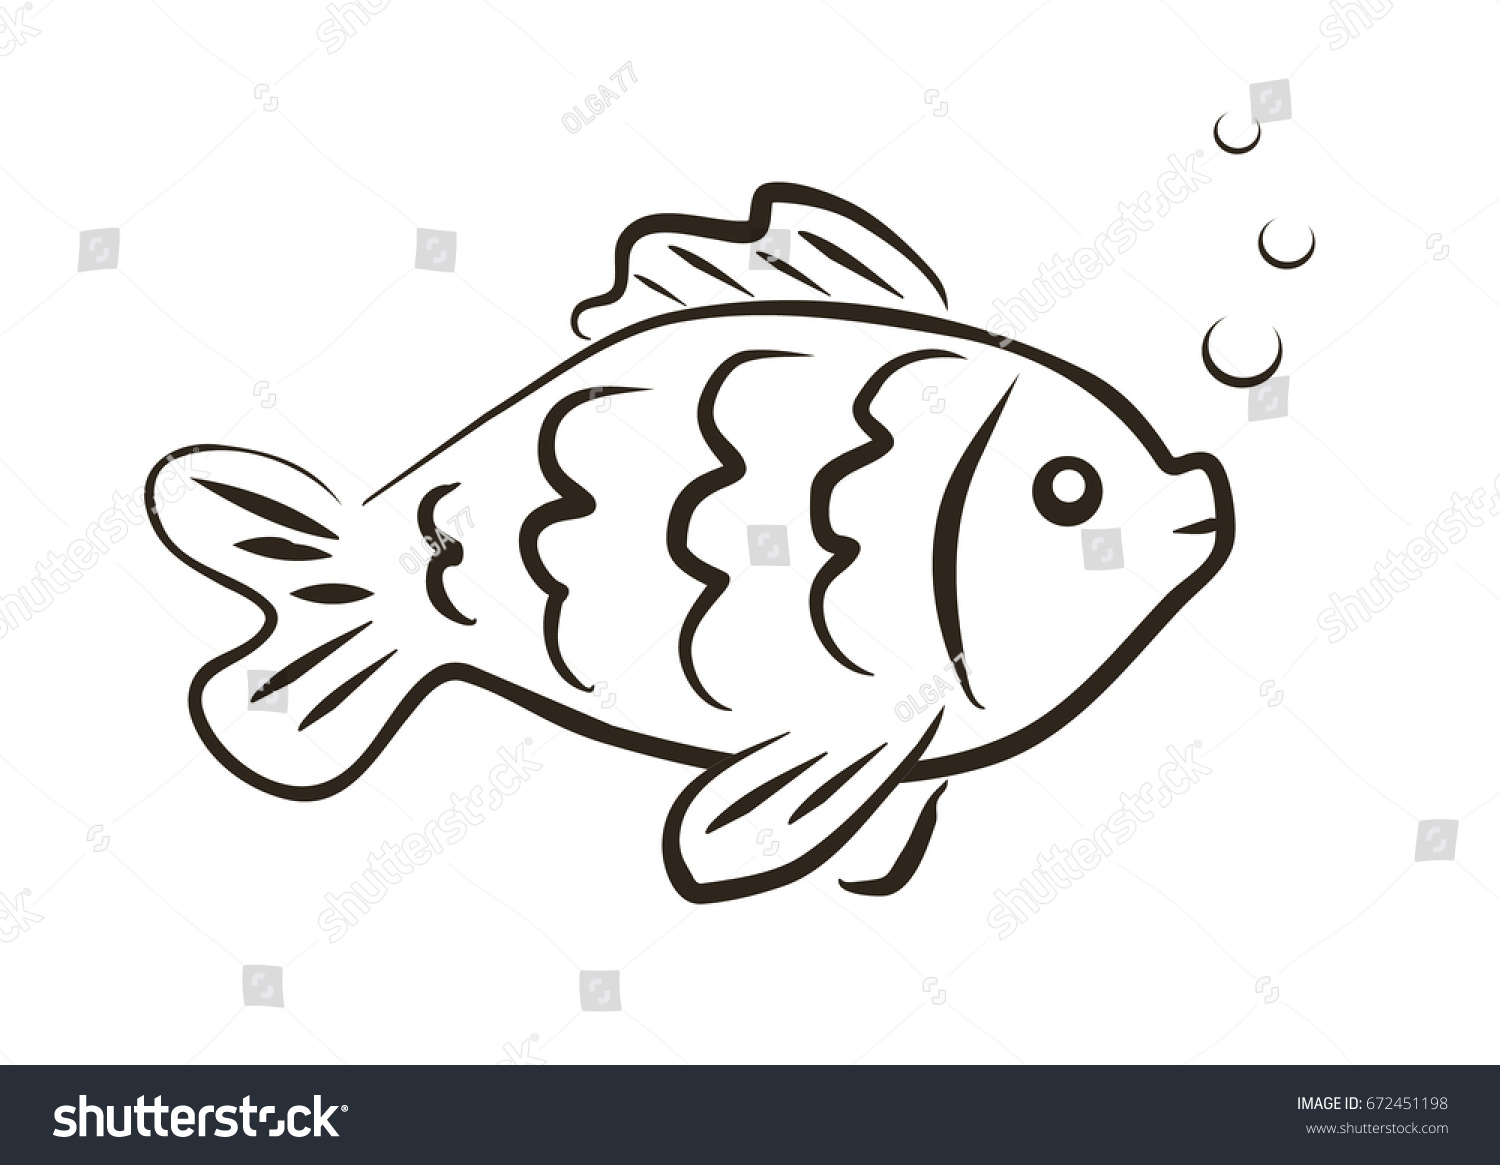 - Vector Drawn Fish Outline Illustrationdecorative Fish Stock Vector